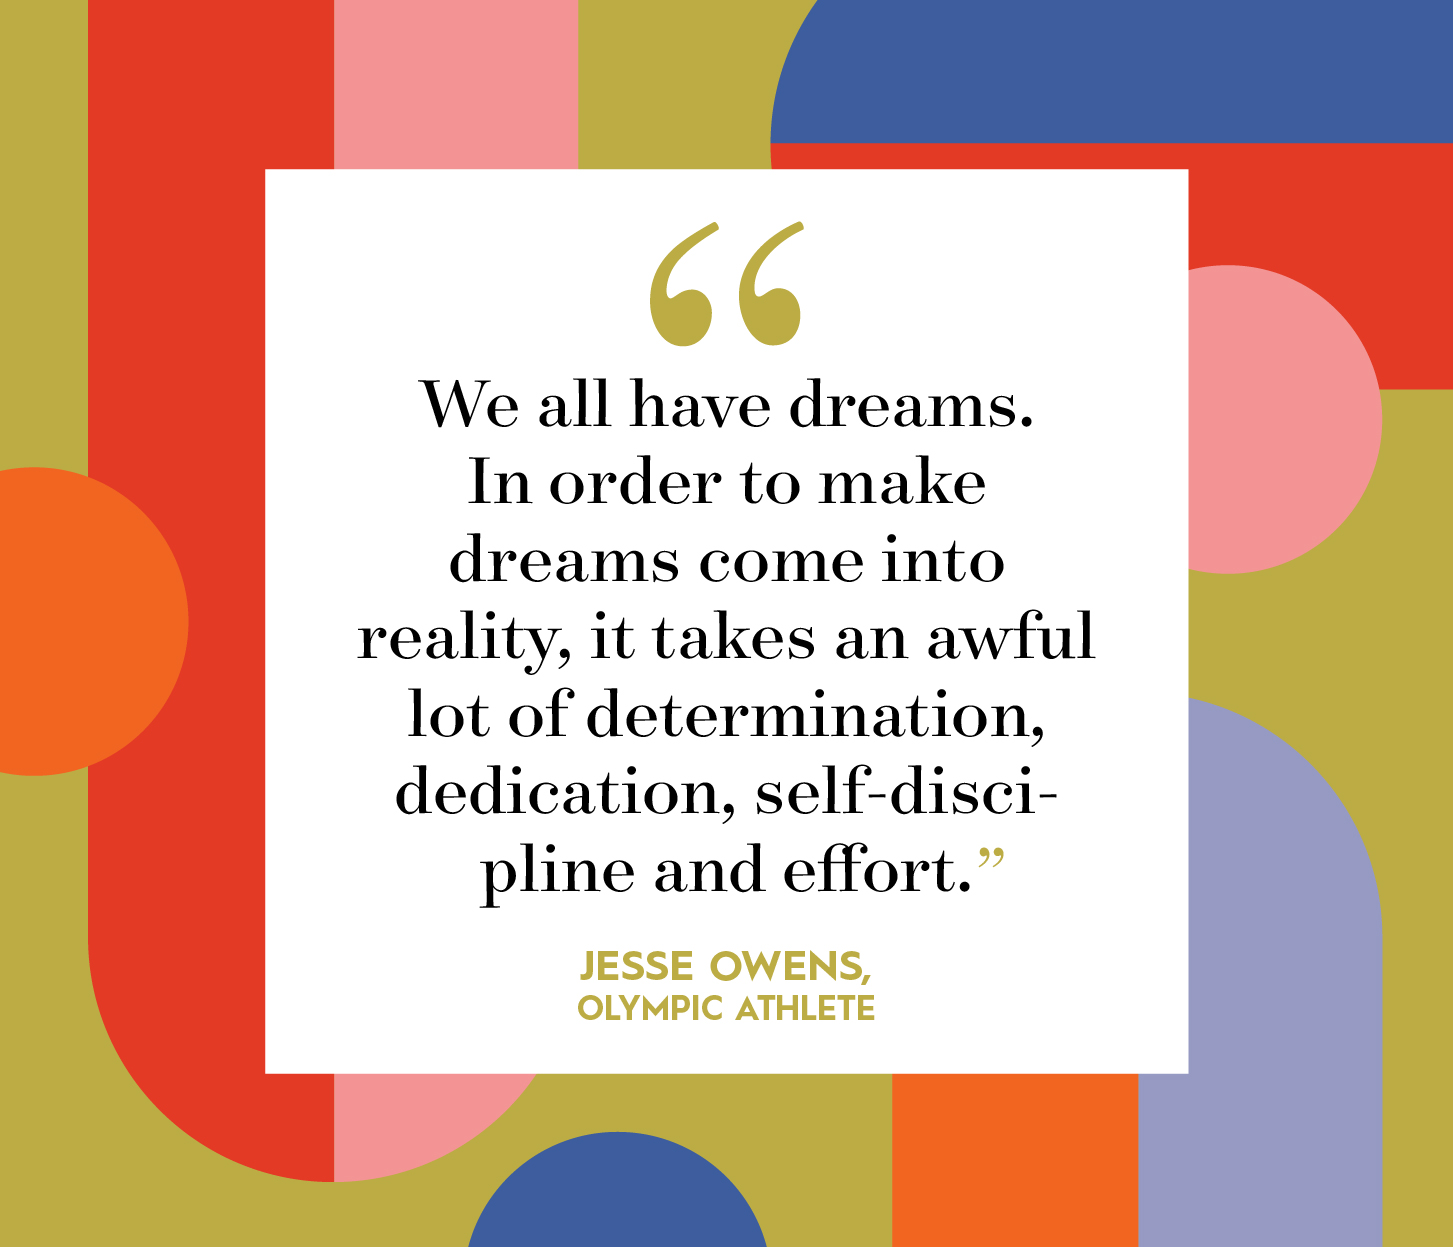 jesse owens quote on multicolor background